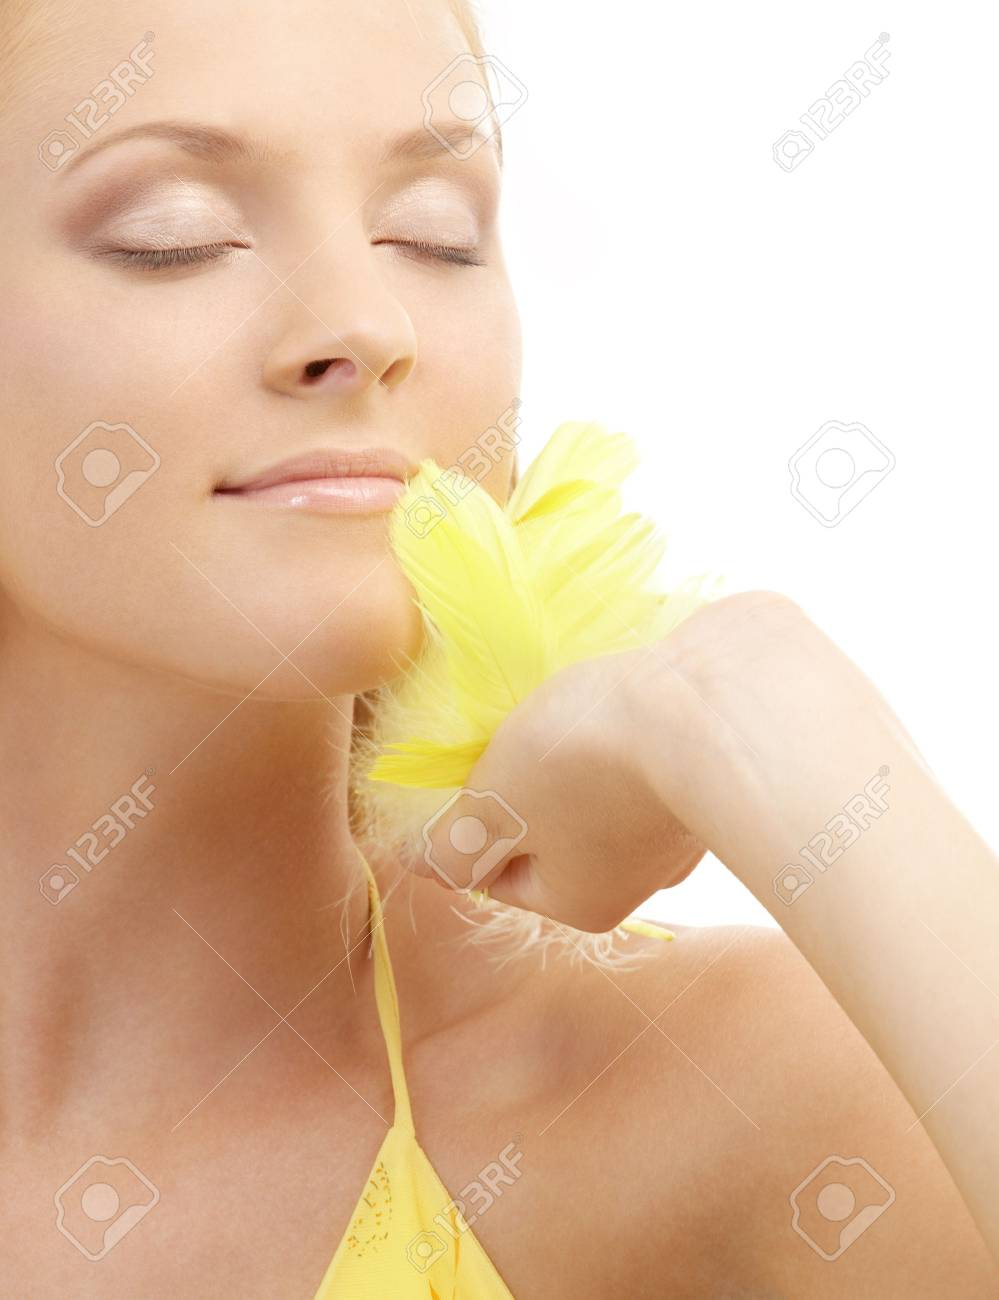 portrait of woman with yellow feathers over white background Stock Photo - 1962027